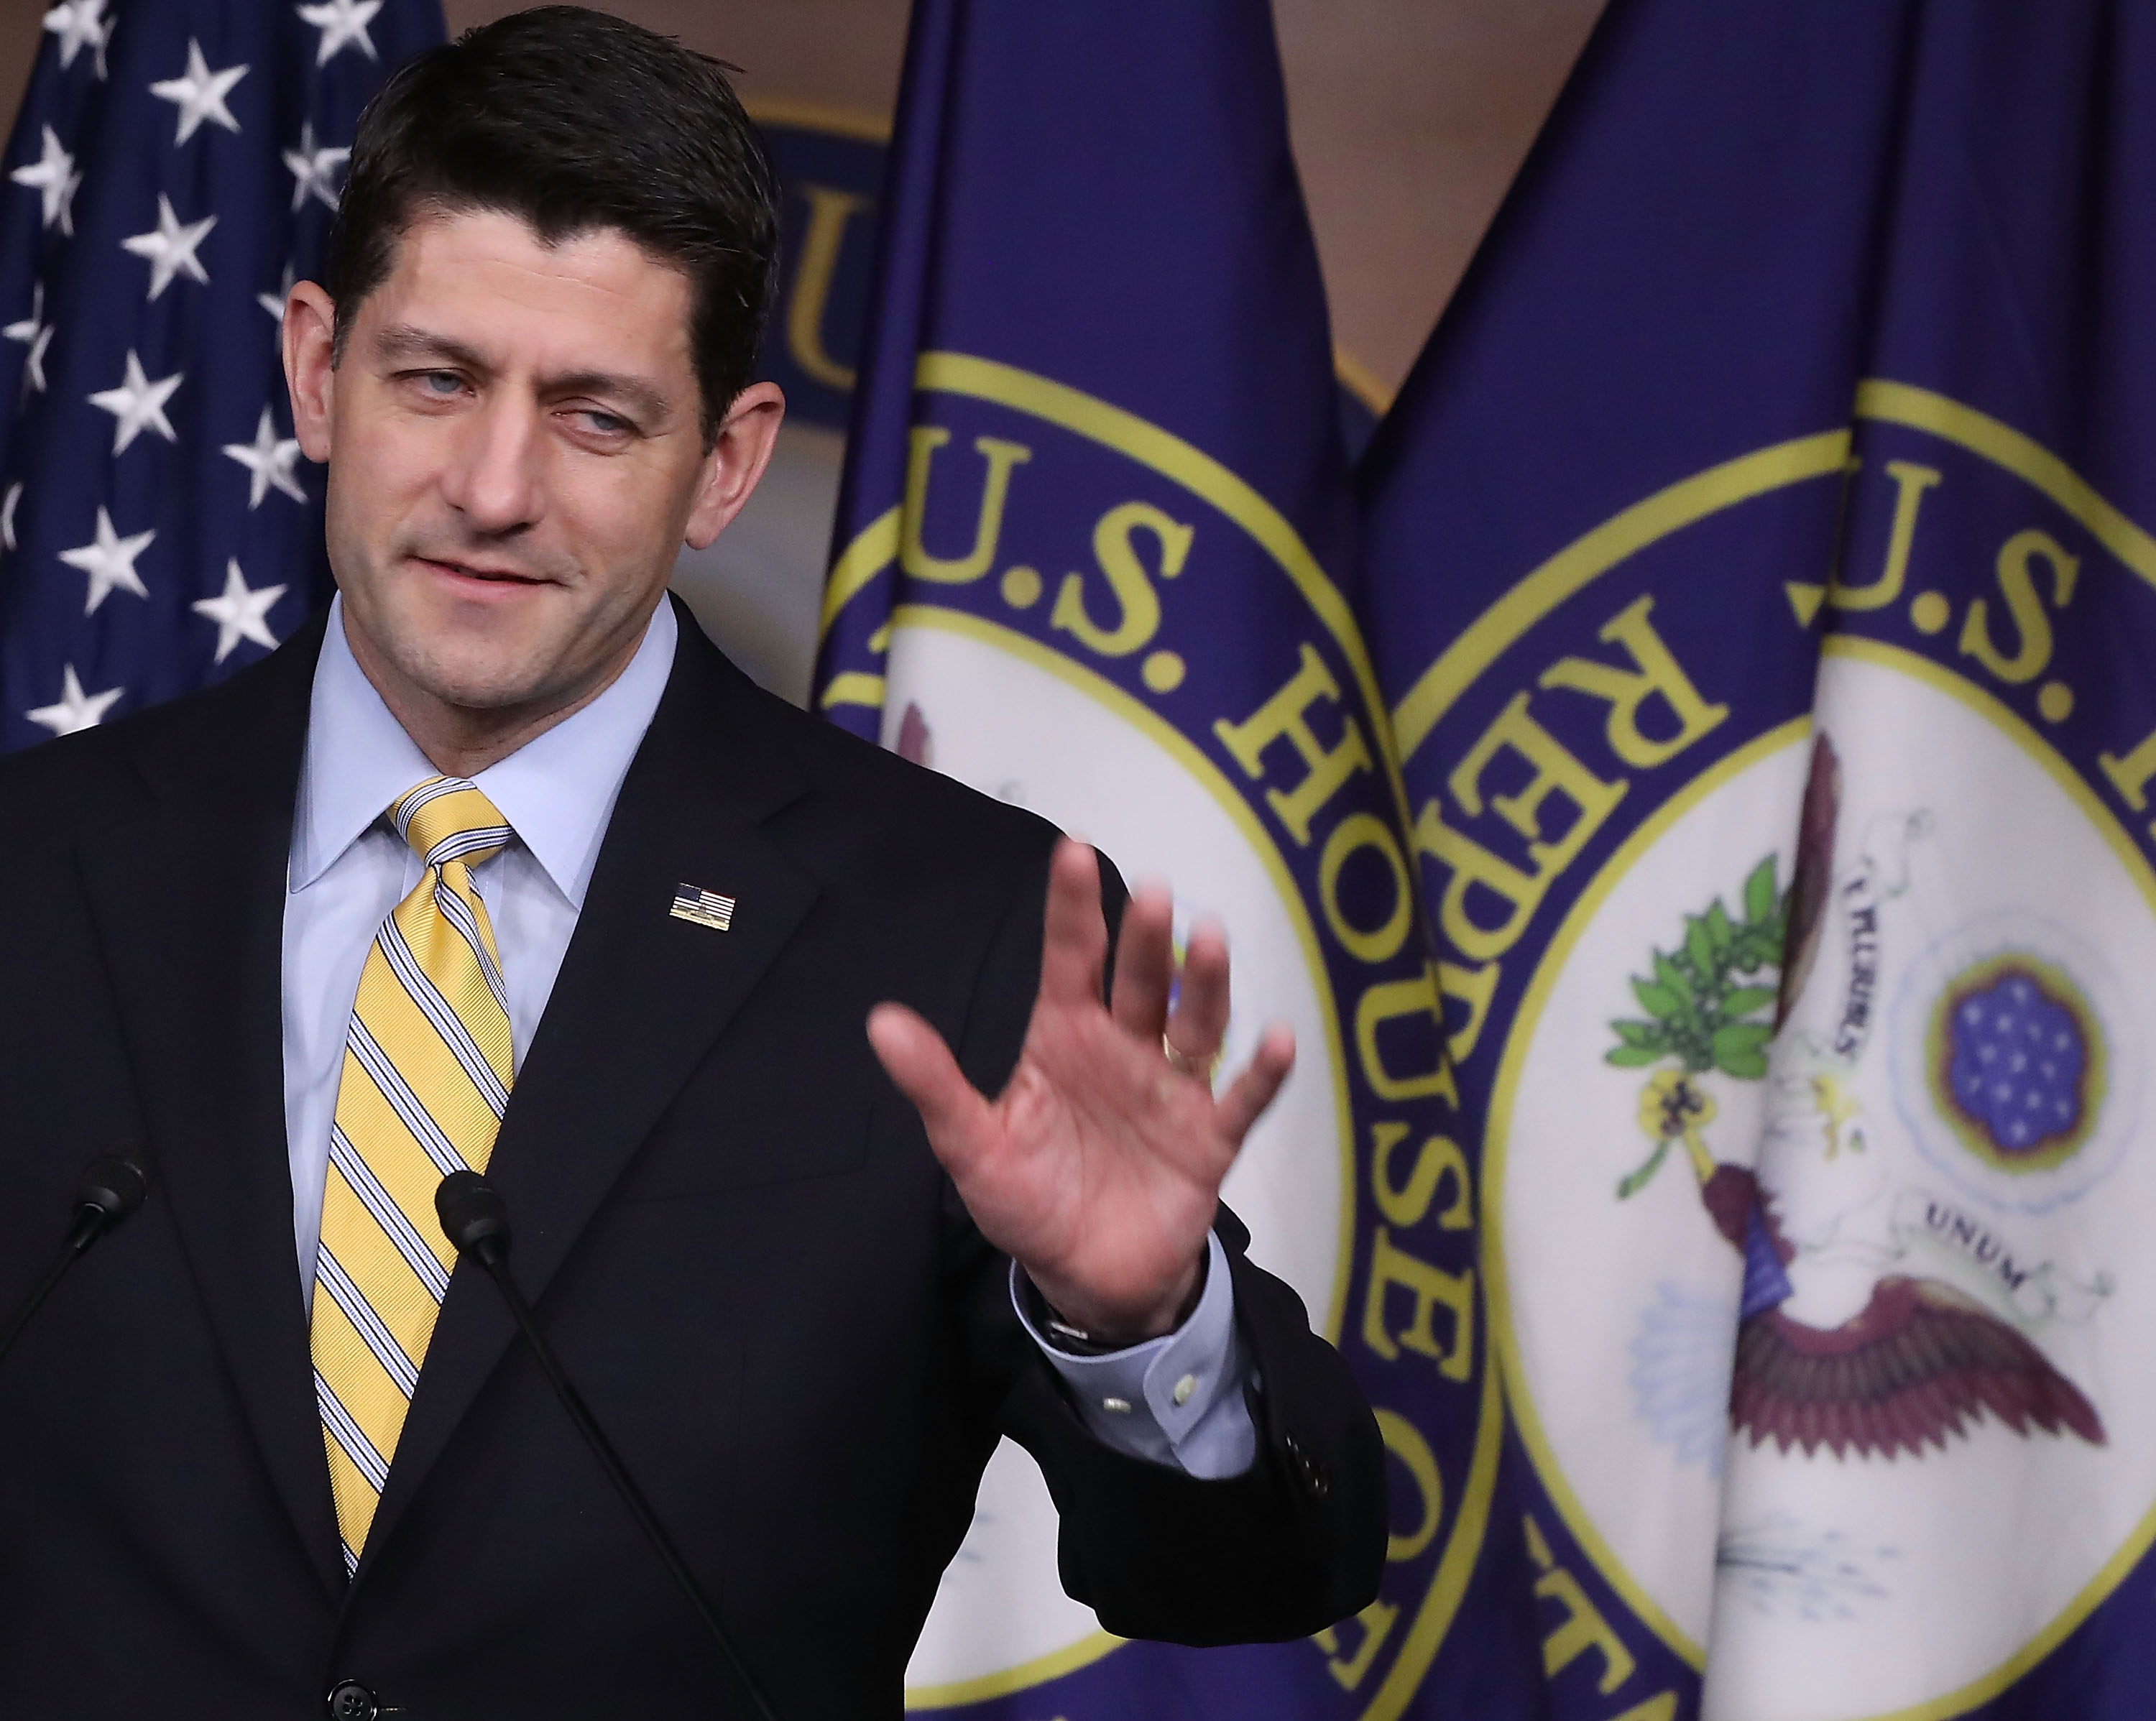 The house just passed a sweeping abortion funding ban heres what it does vox - Paul Ryan Holds Weekly Press Briefing At The Capitol